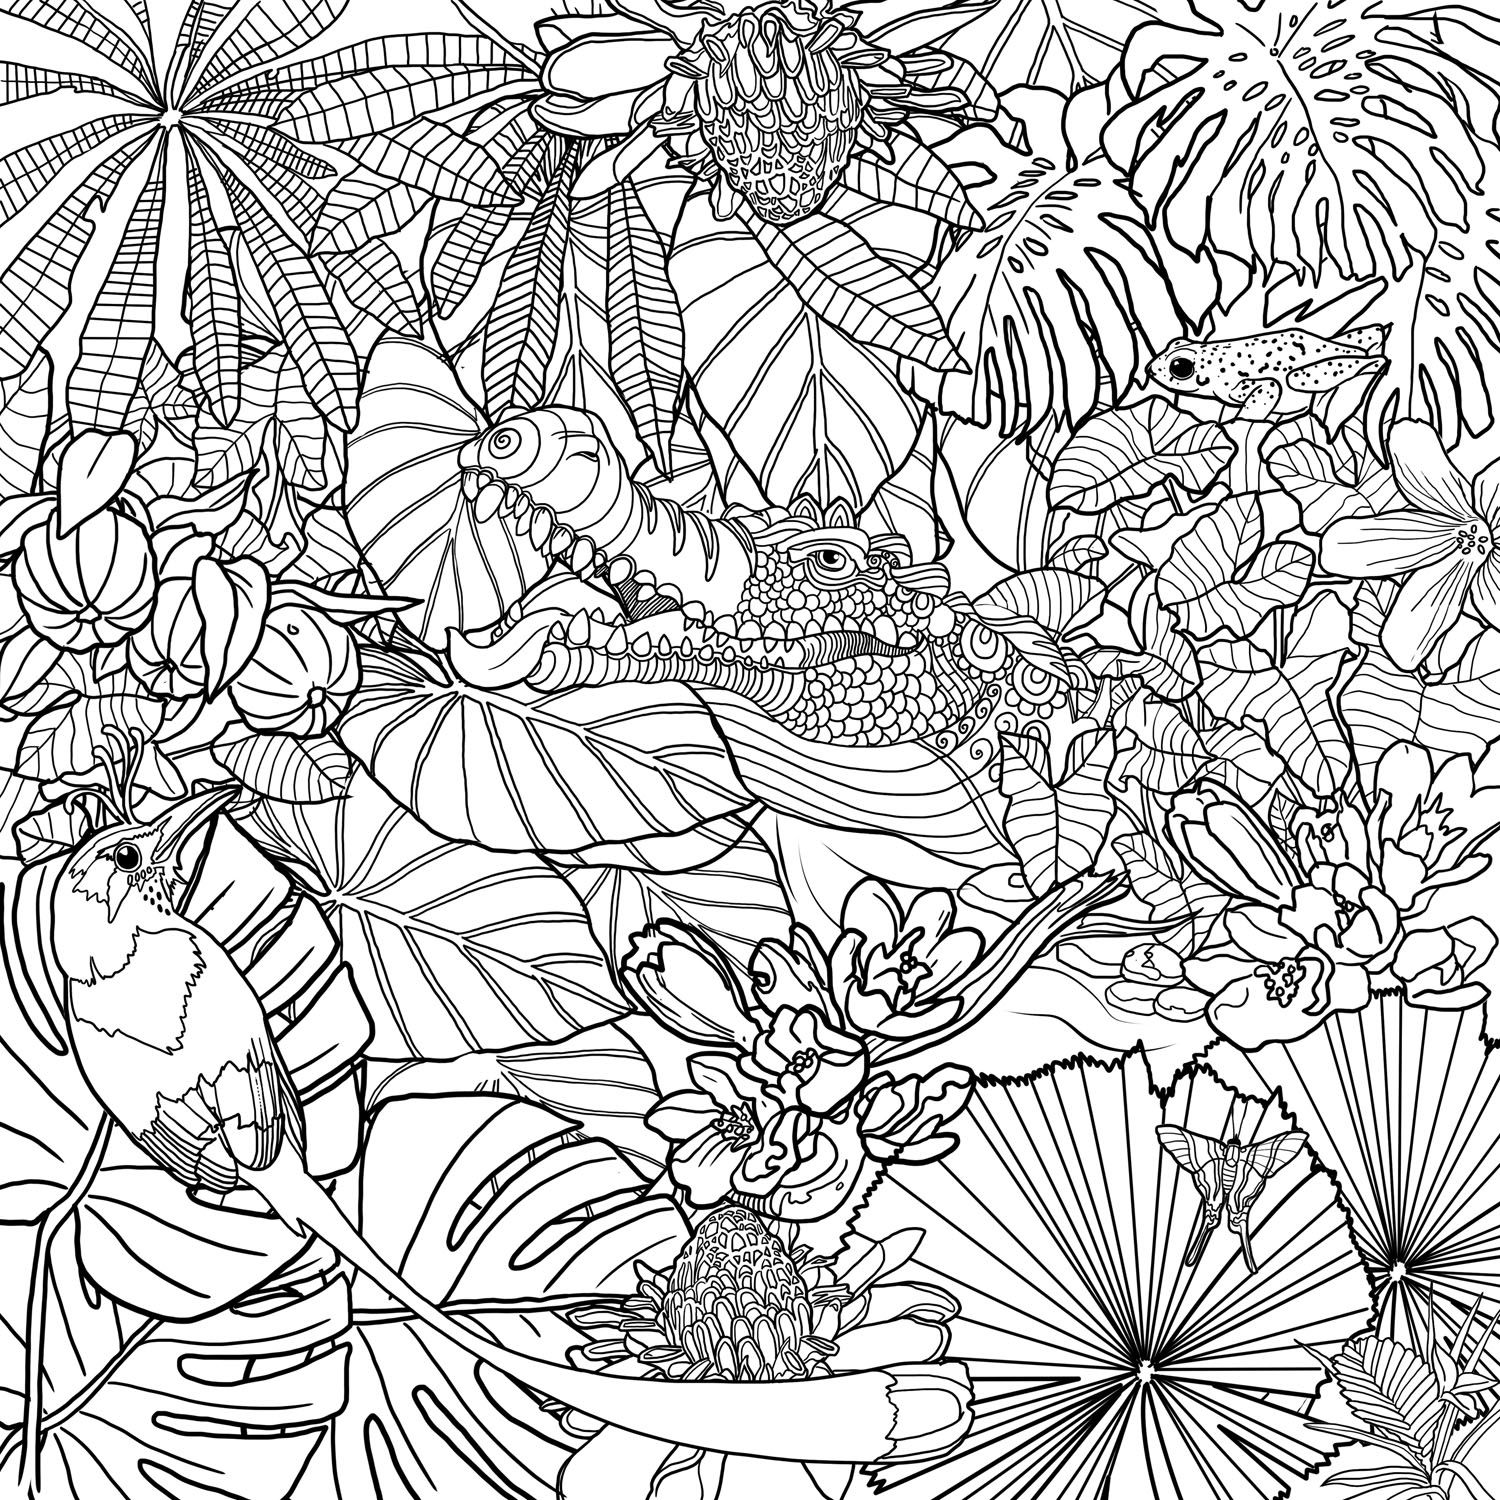 The top 10 Ideas About Jungle Coloring Pages for Adults ...